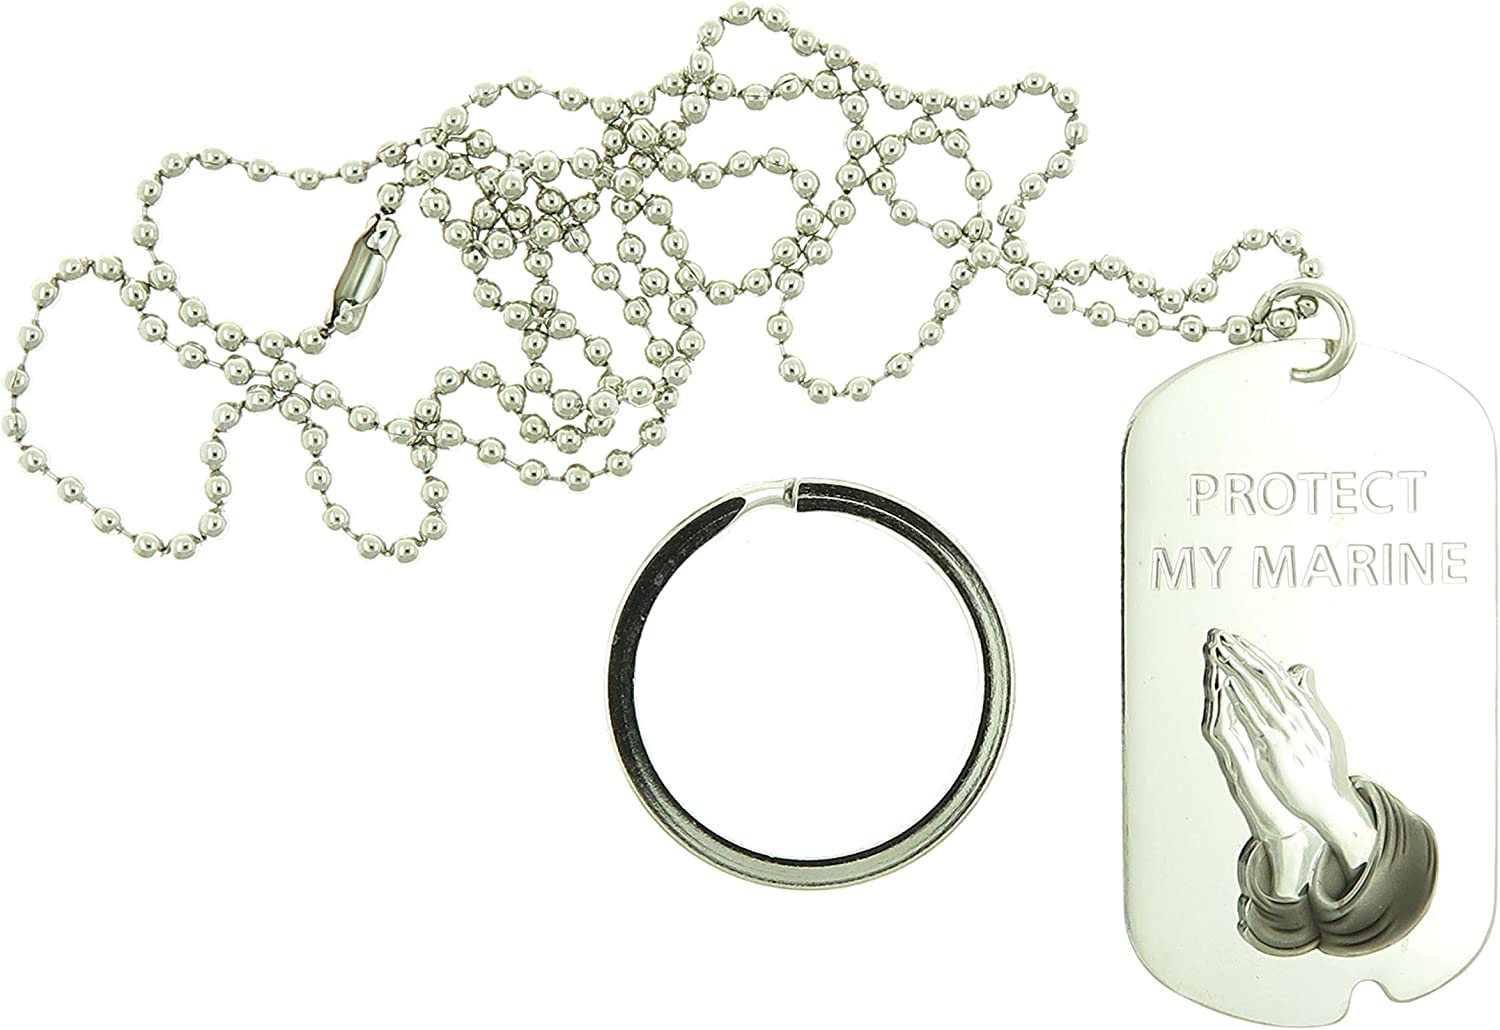 Michael Dog Tag with Keychain EAGLE CREST St